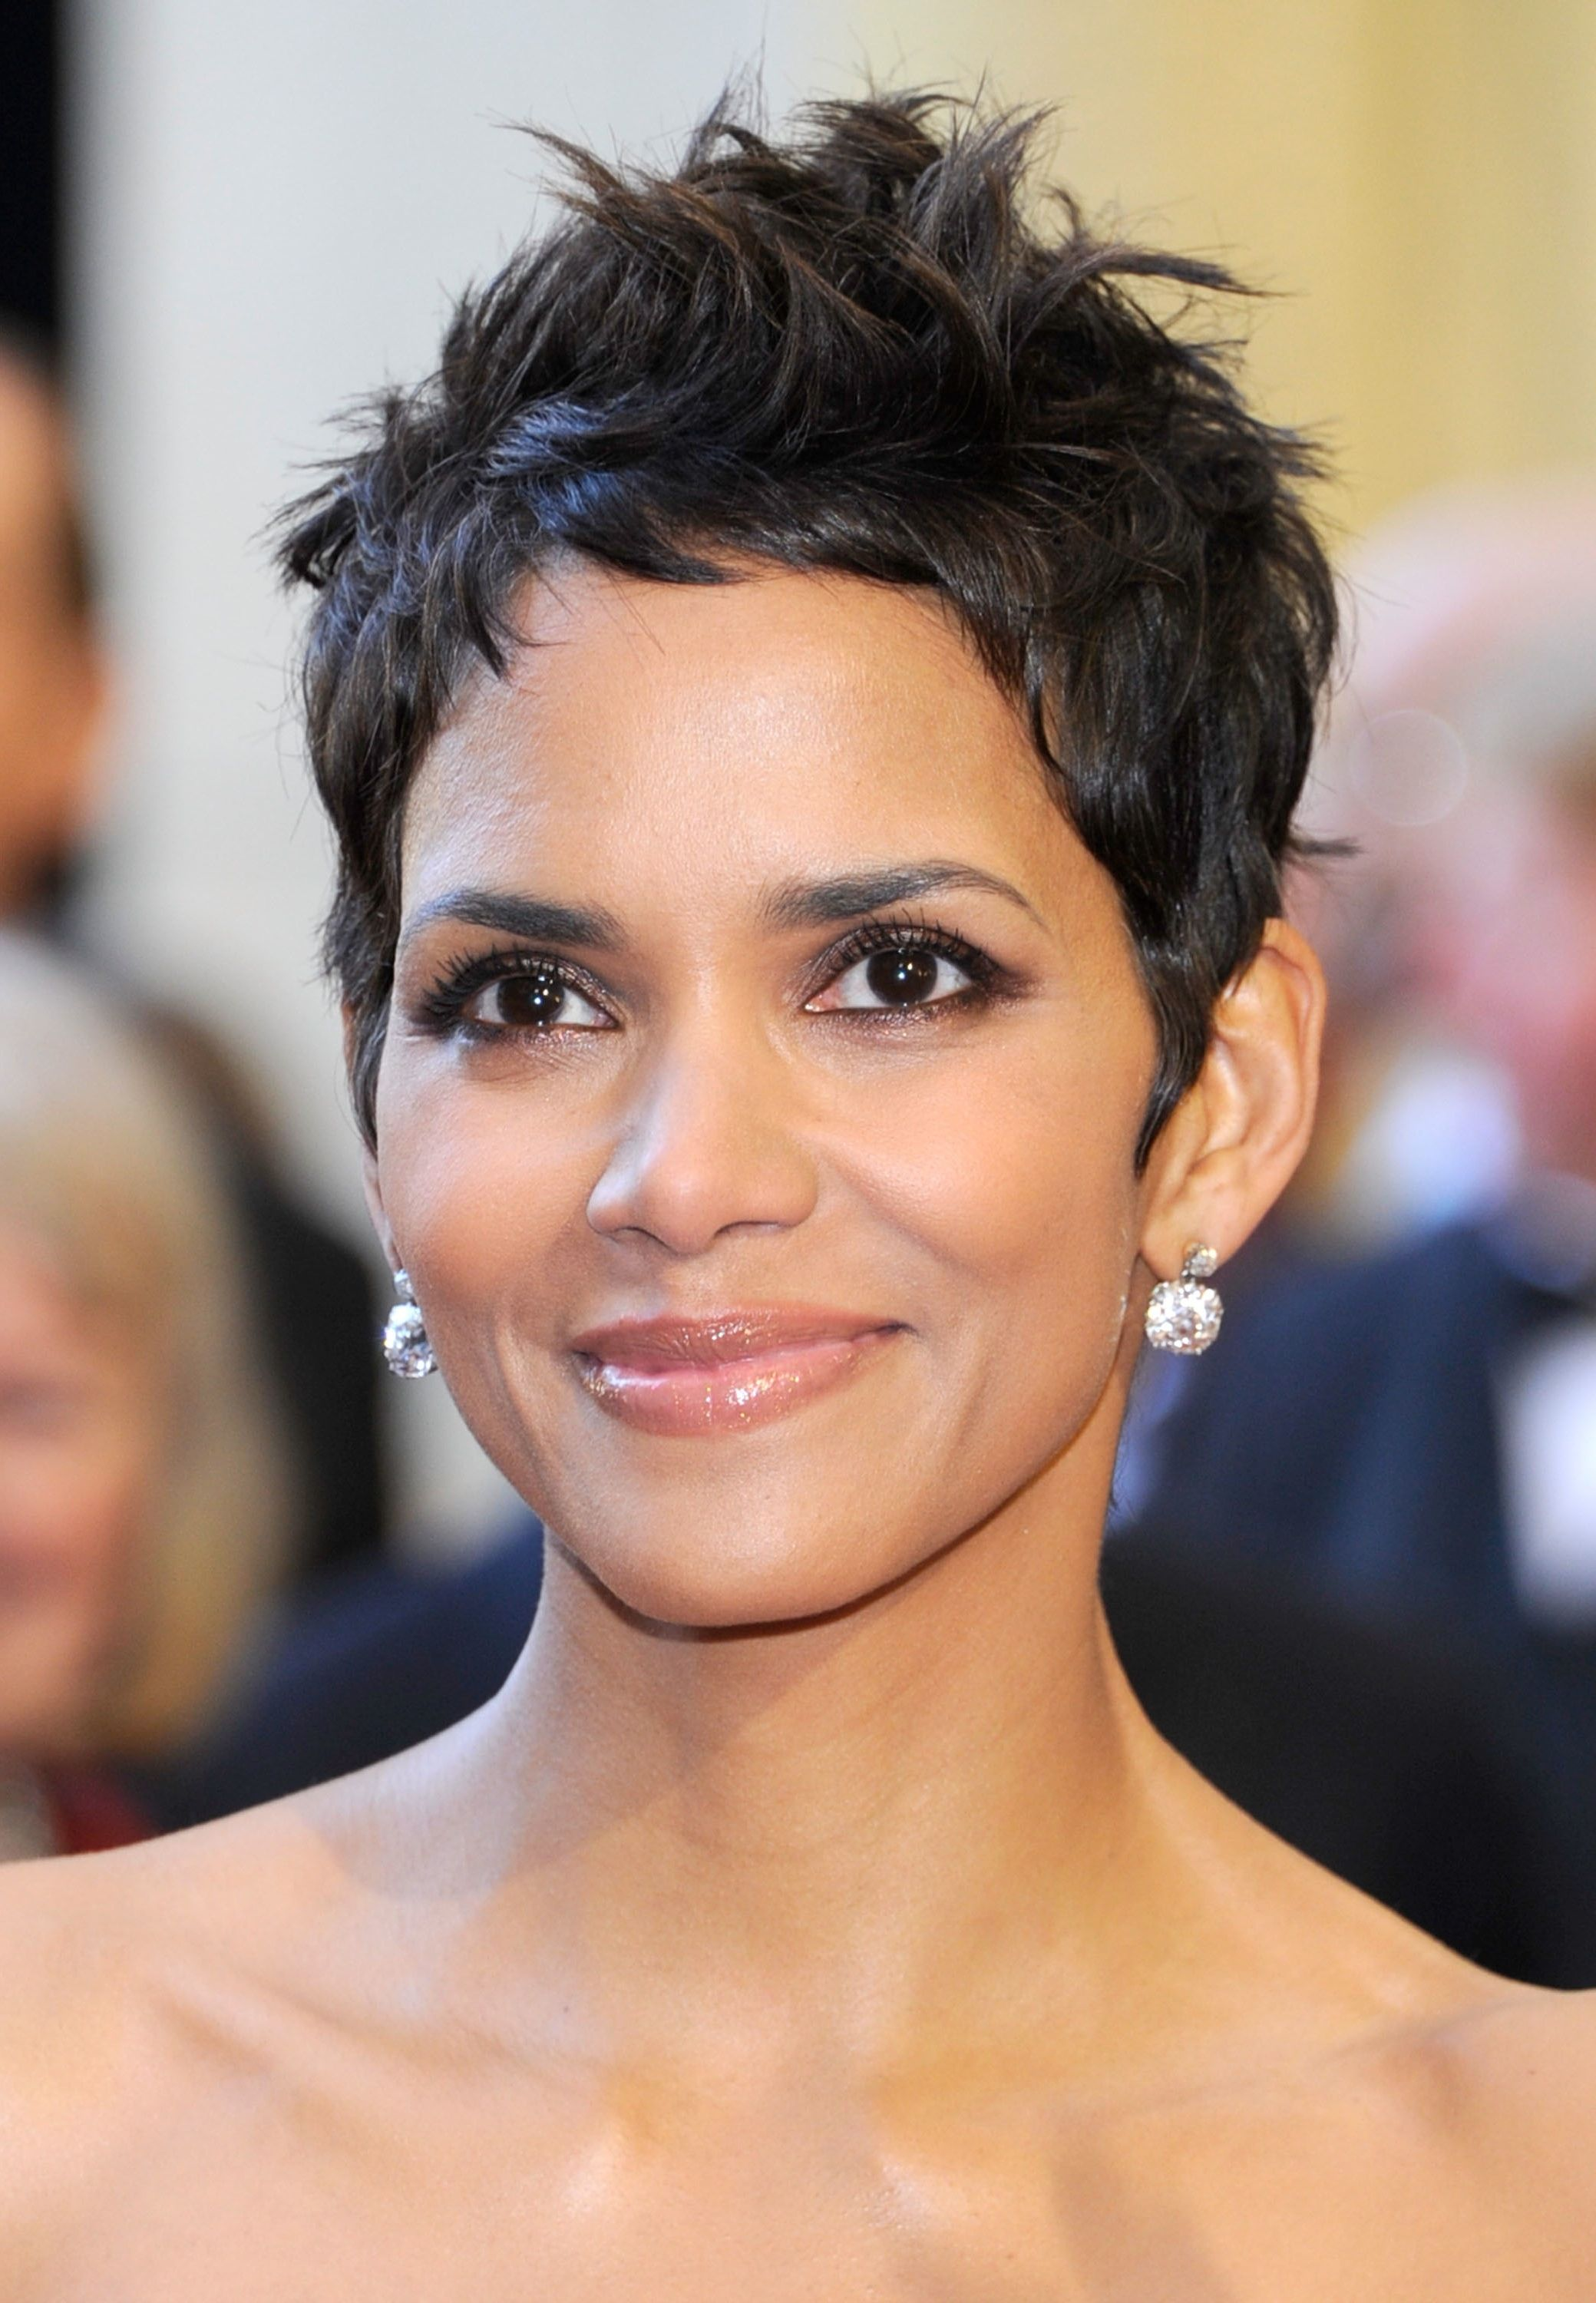 Halle Berry Hairstyle Hale Berry Pinterest Pixie Frisur